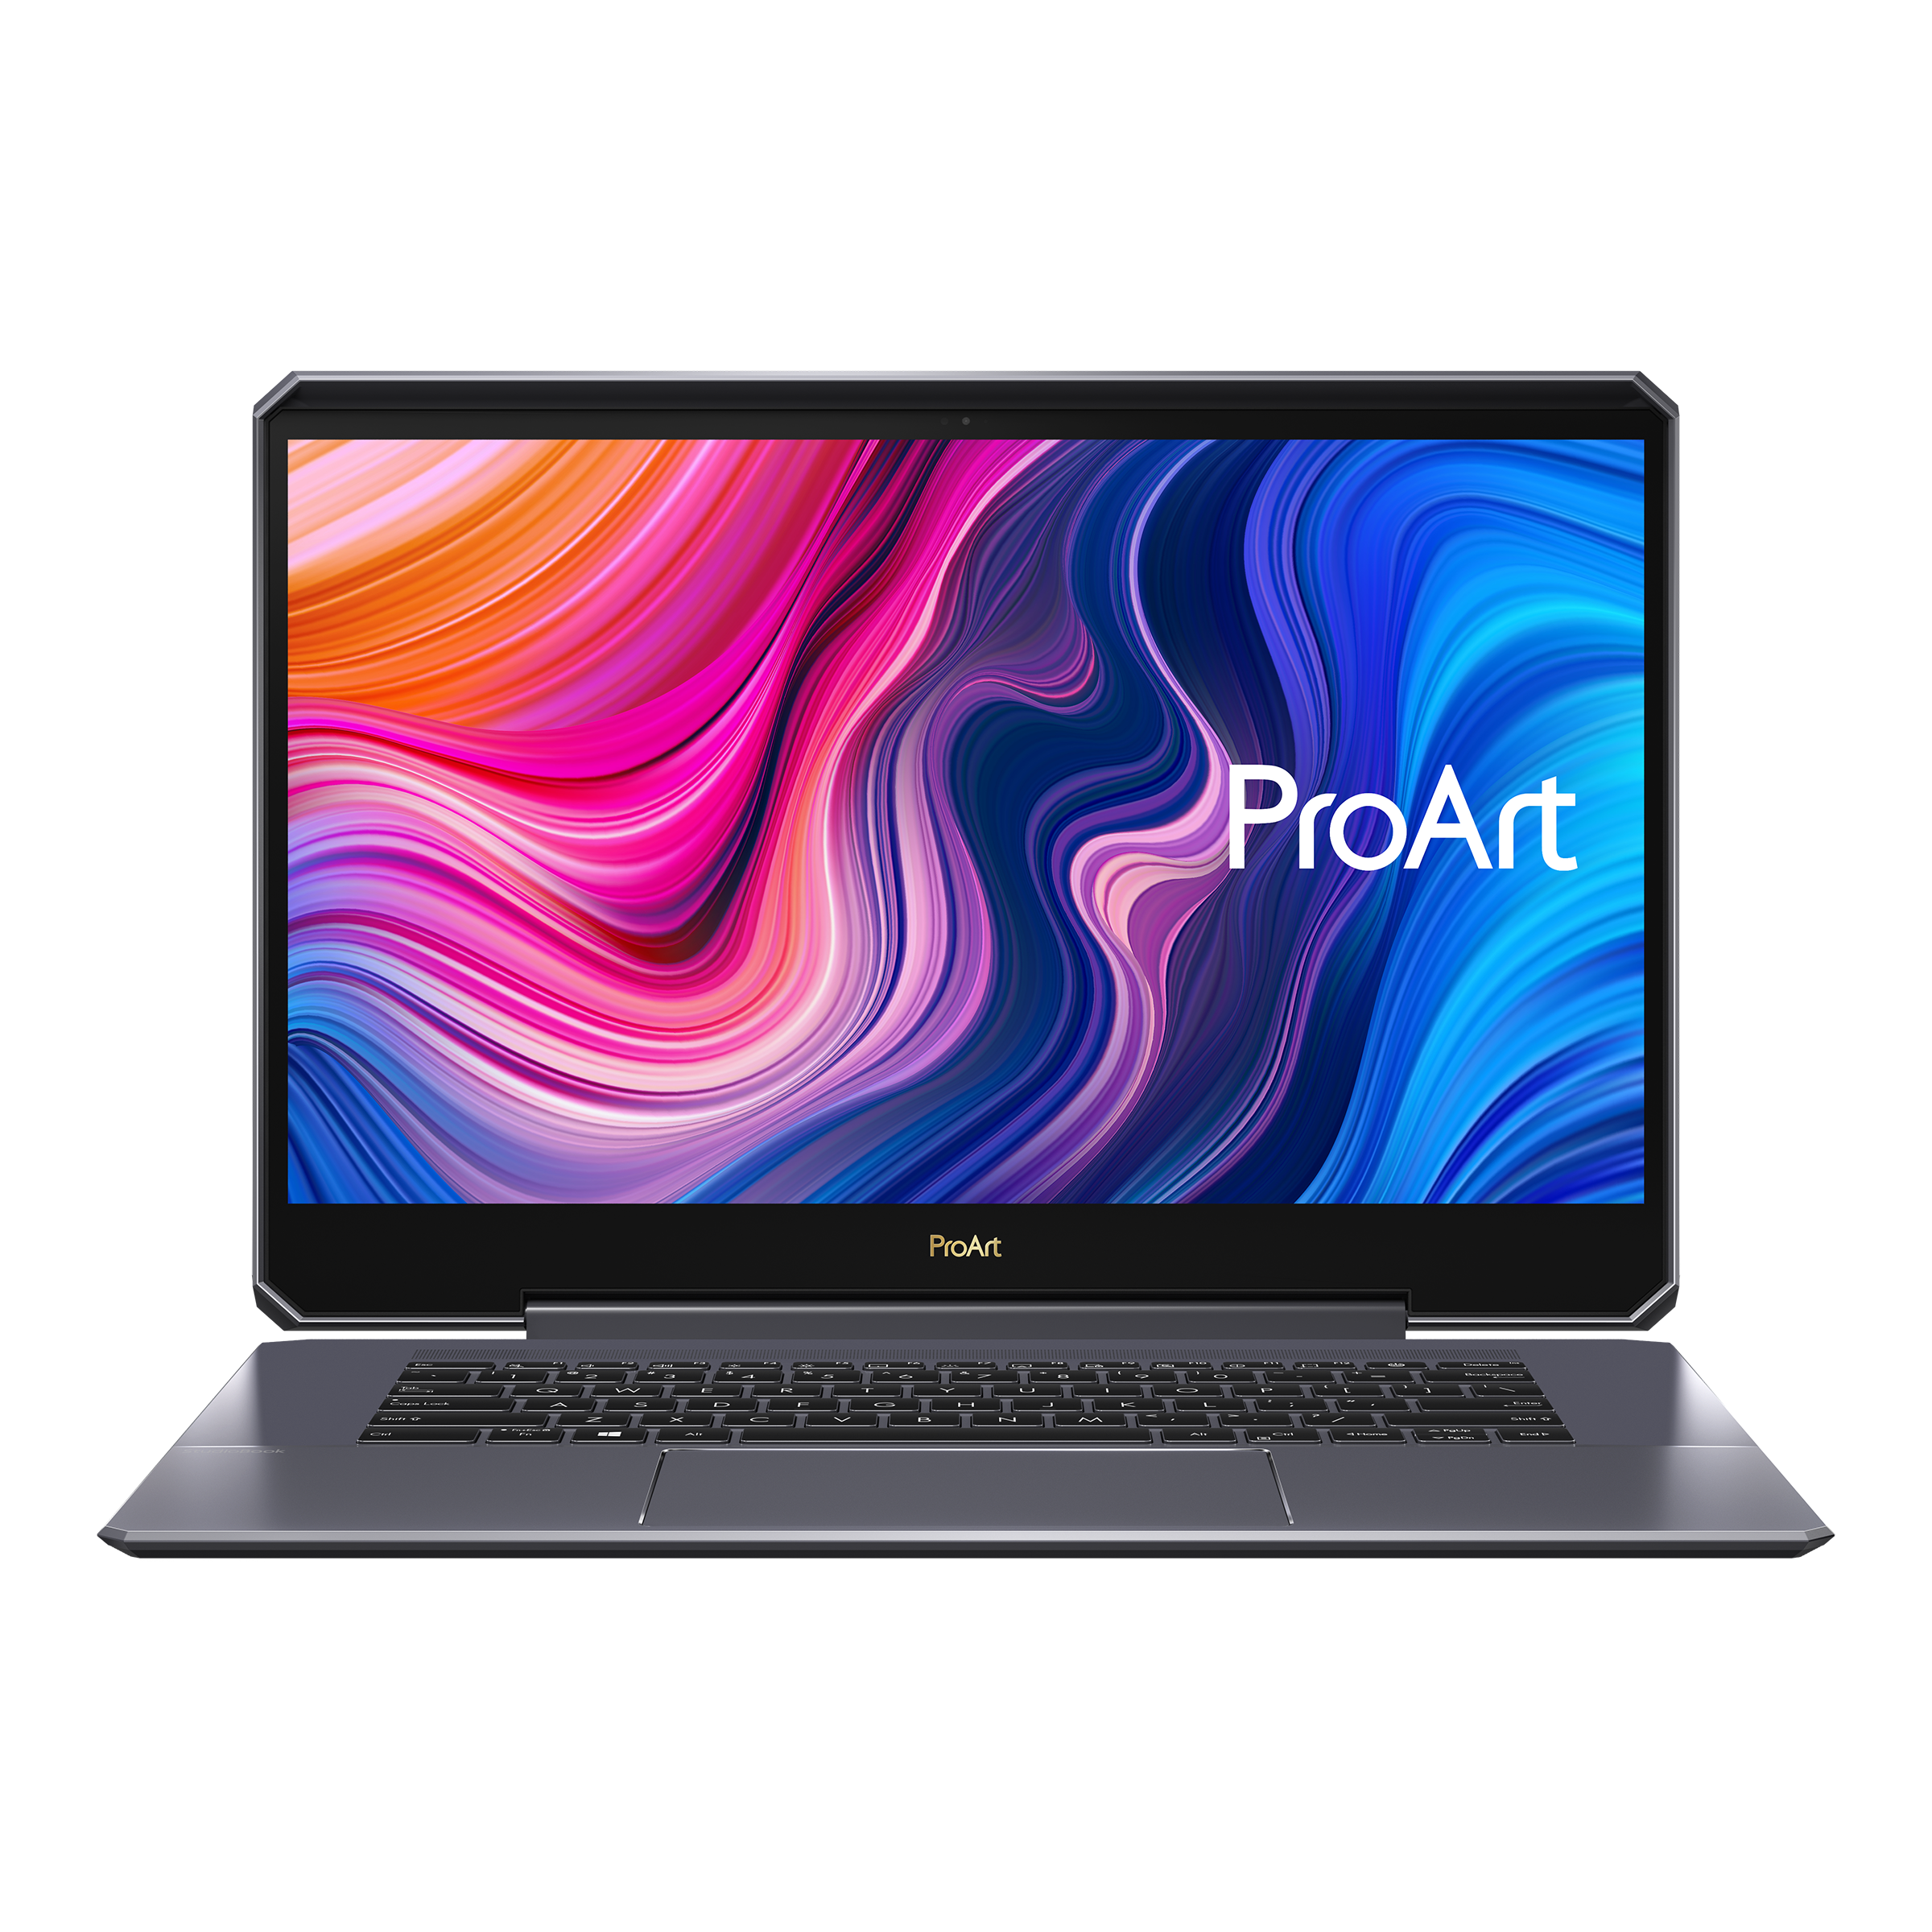 ProArt StudioBook One W590